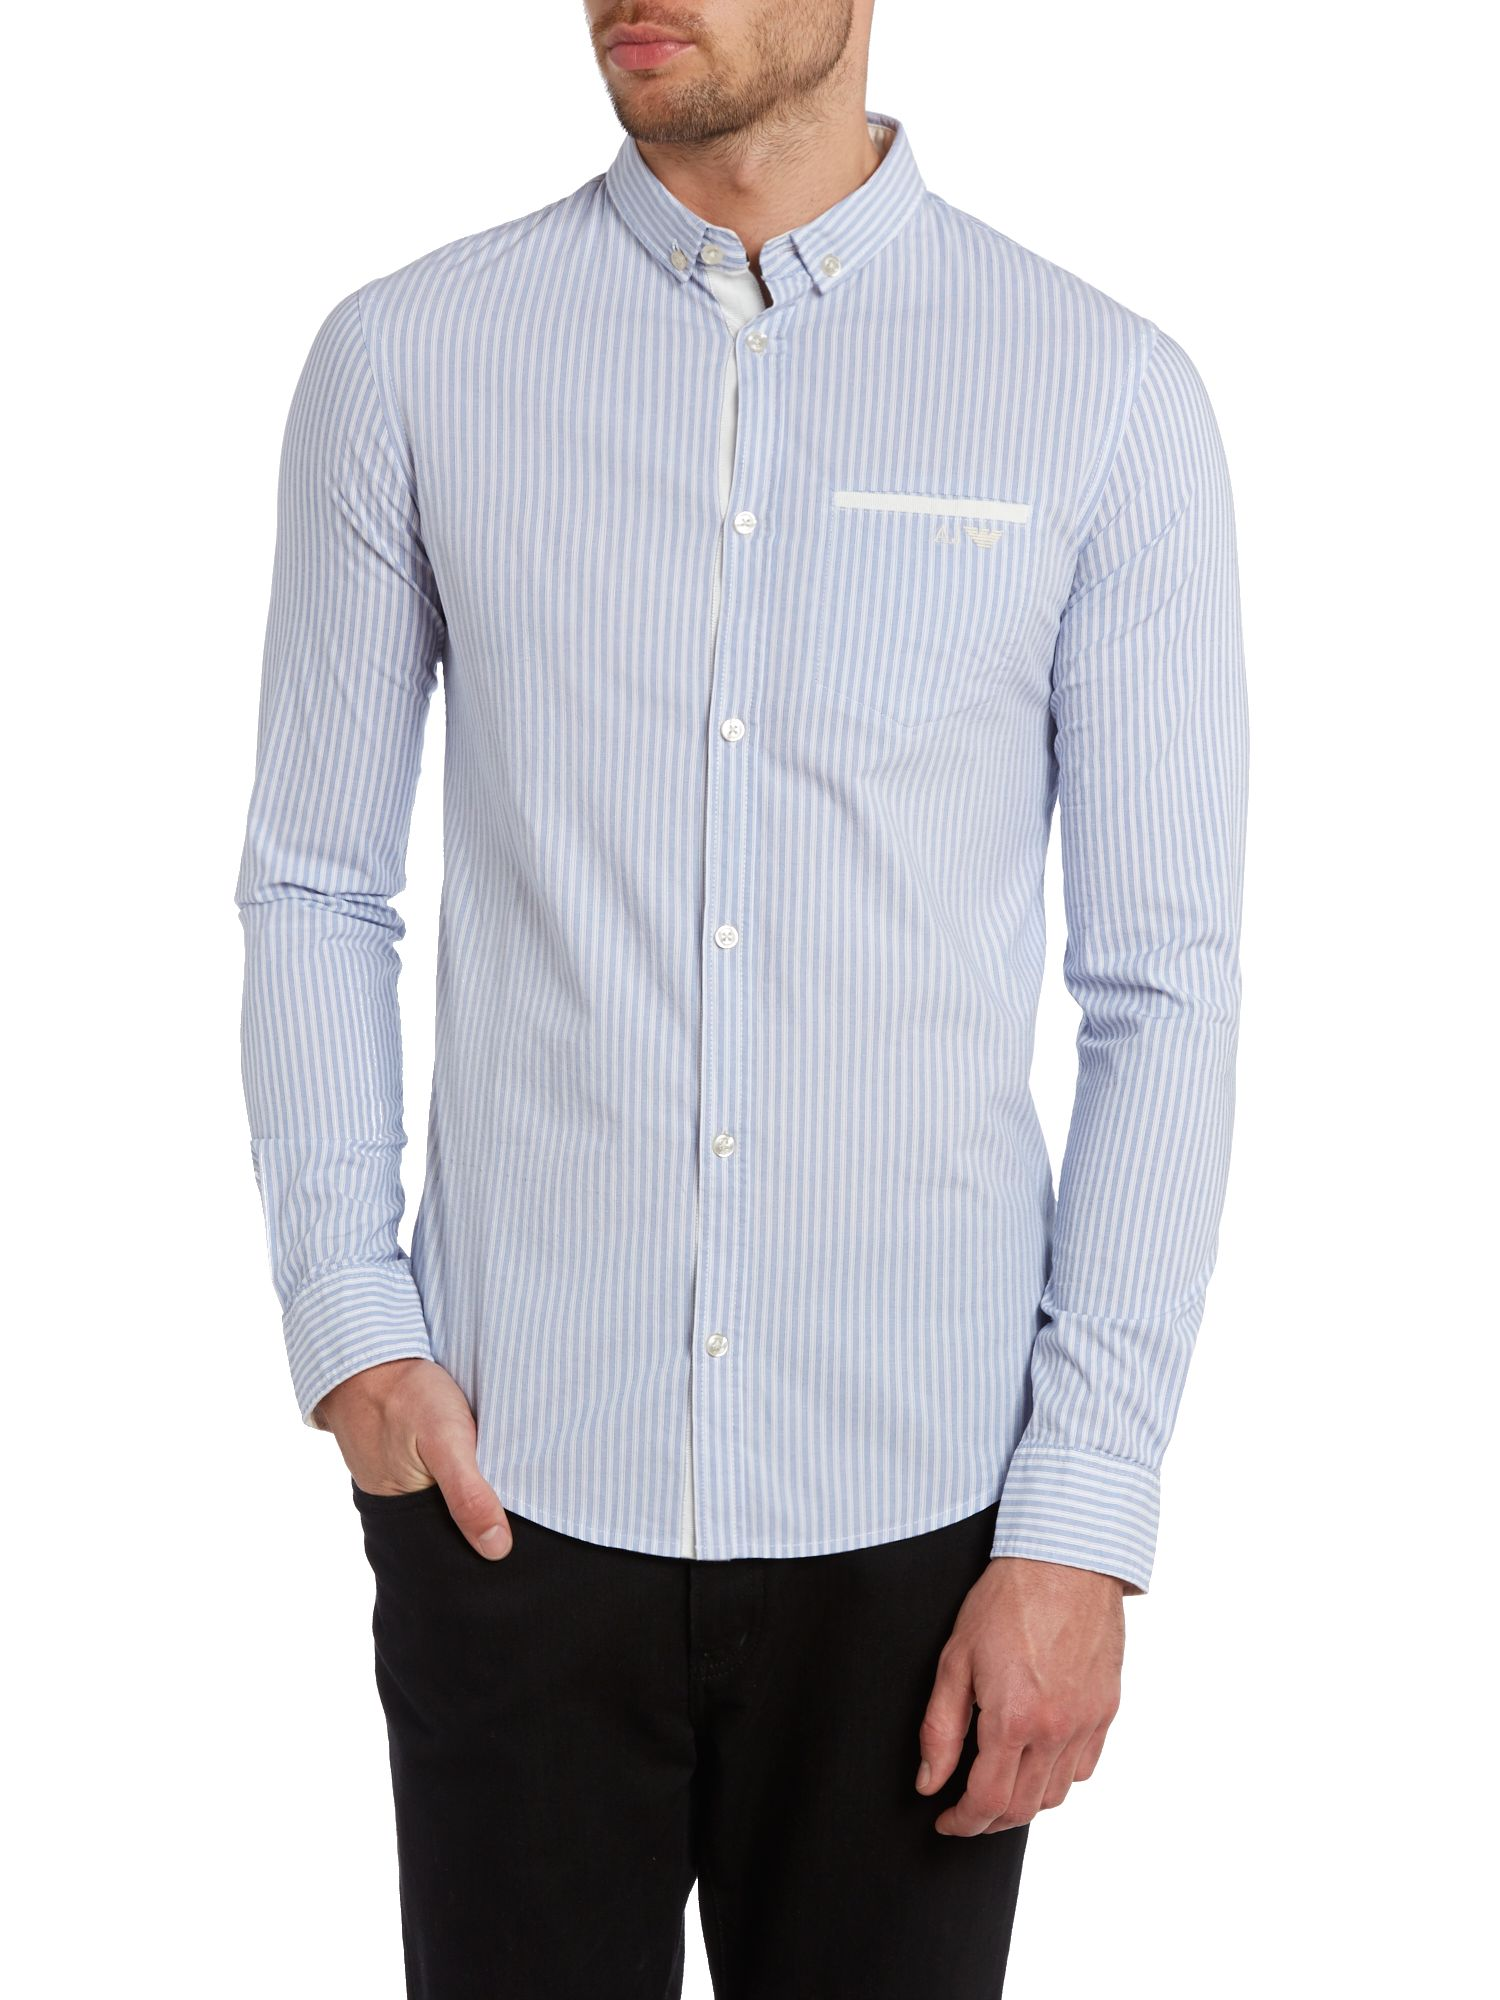 Stripe shirt with contrast pocket detail